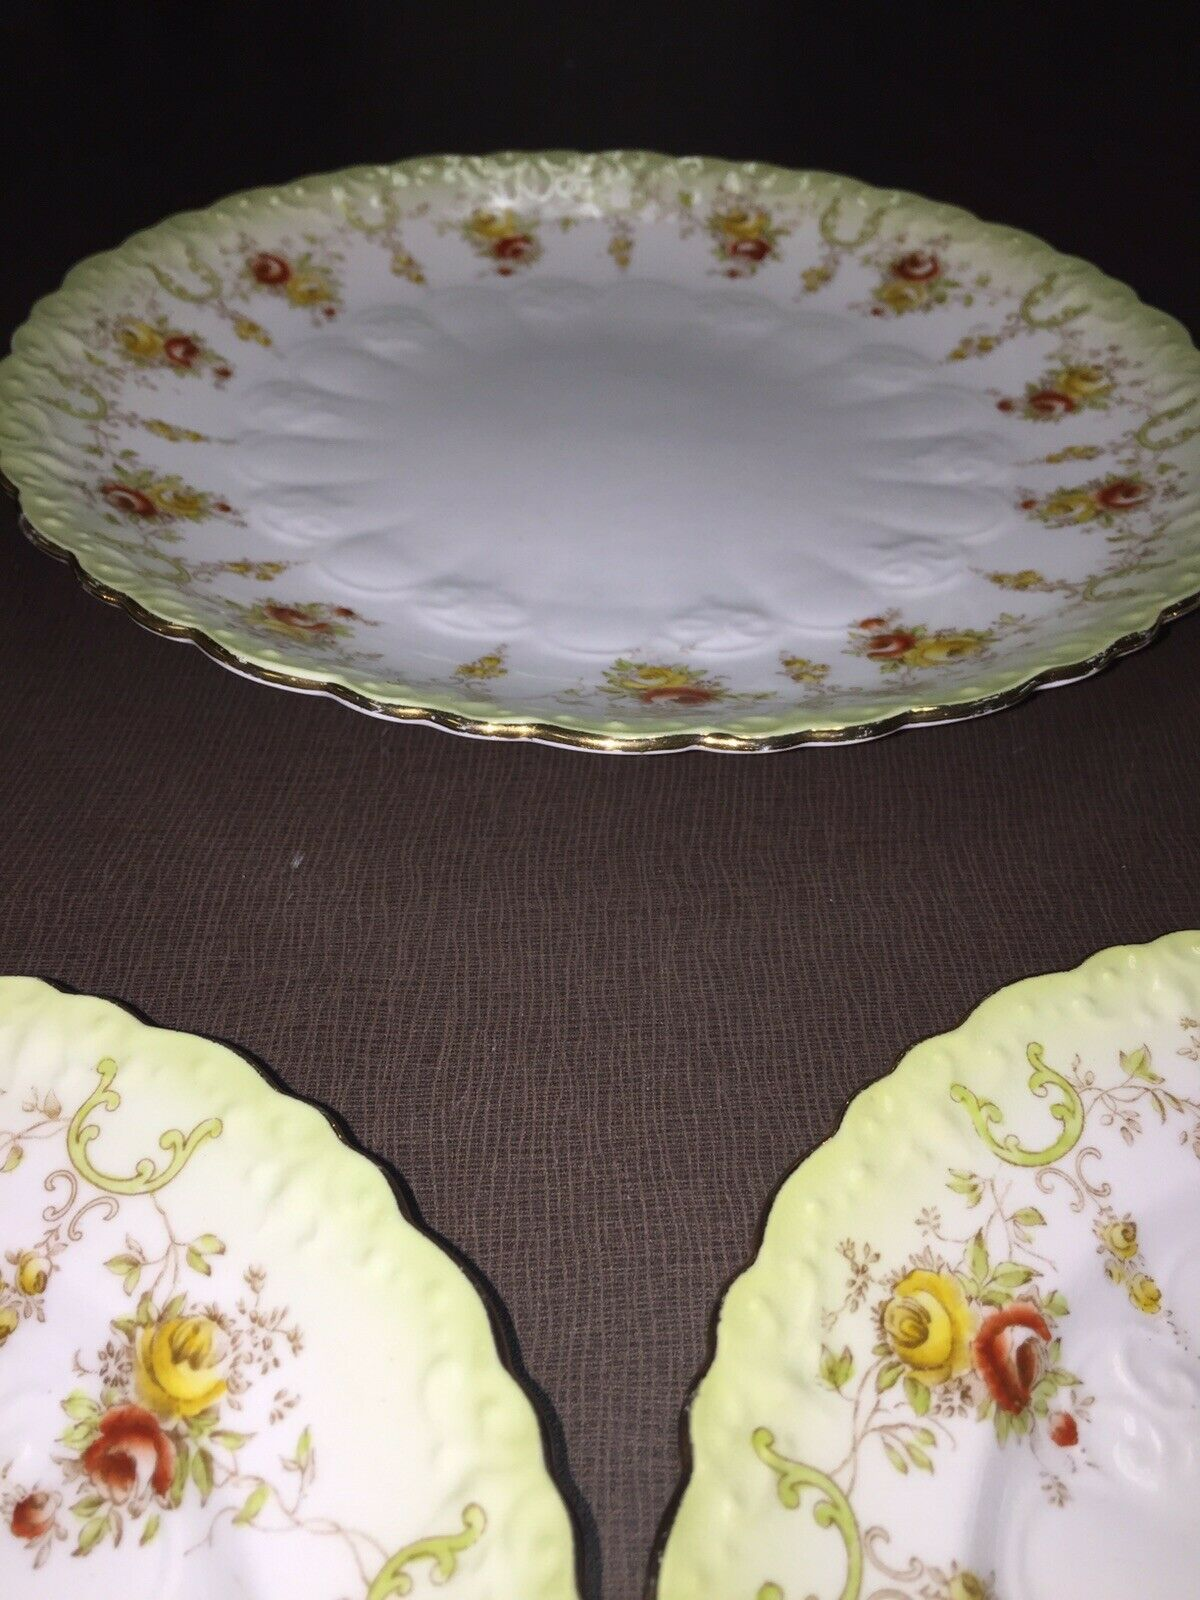 5 Pieces Of Aynsley England China